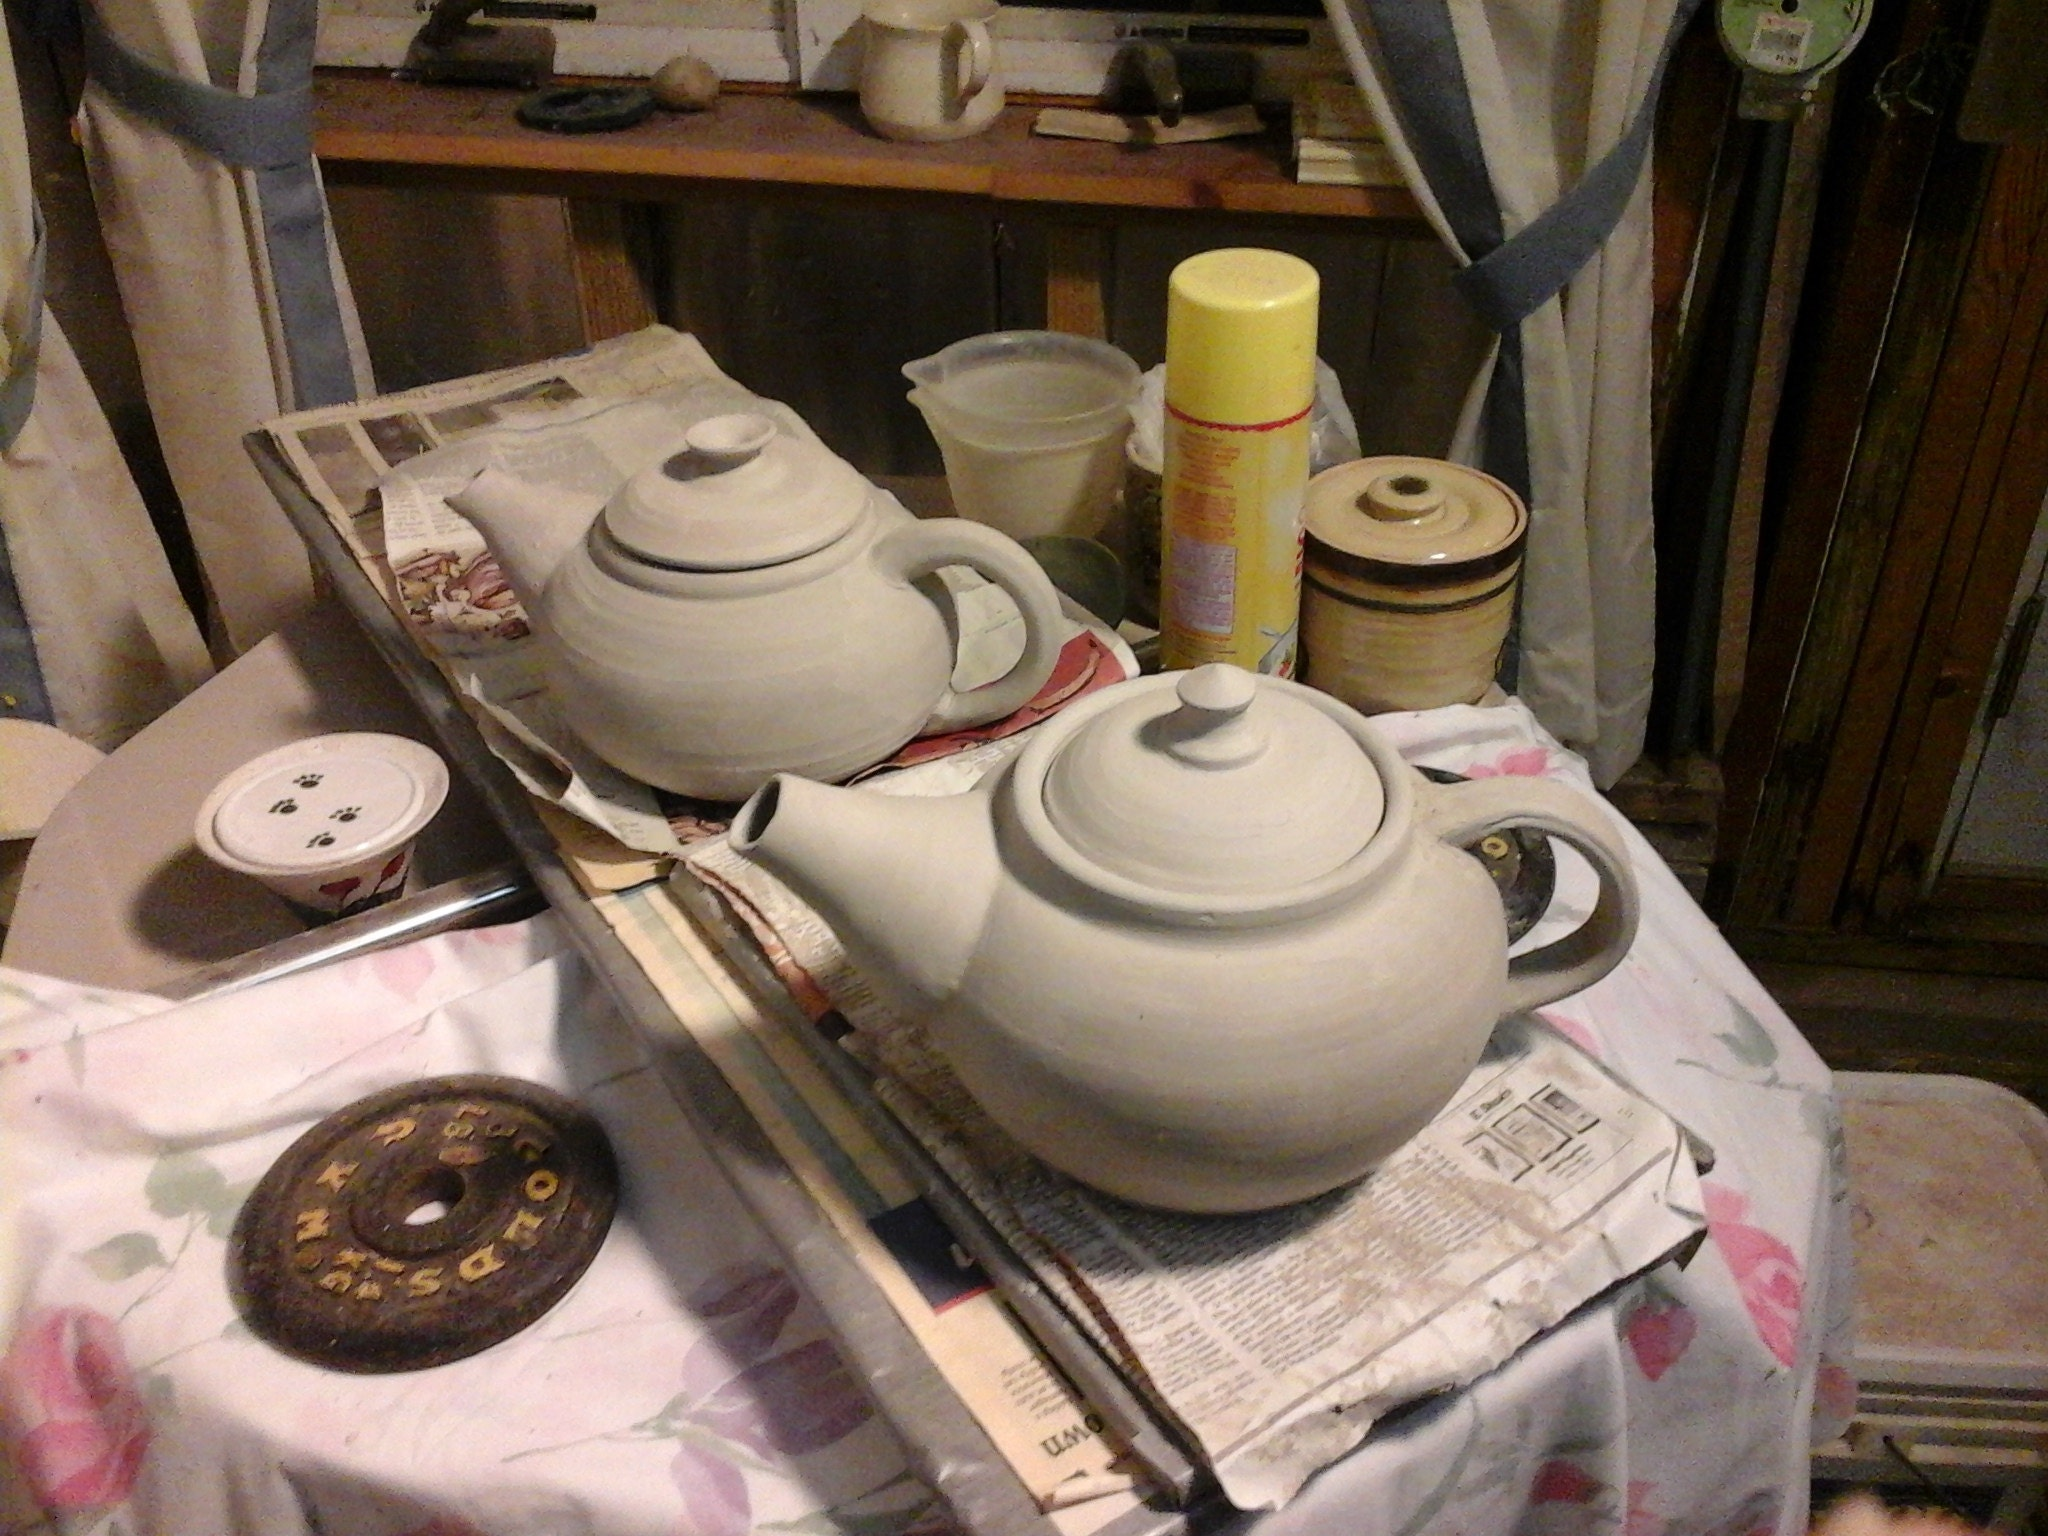 The Tea Pots